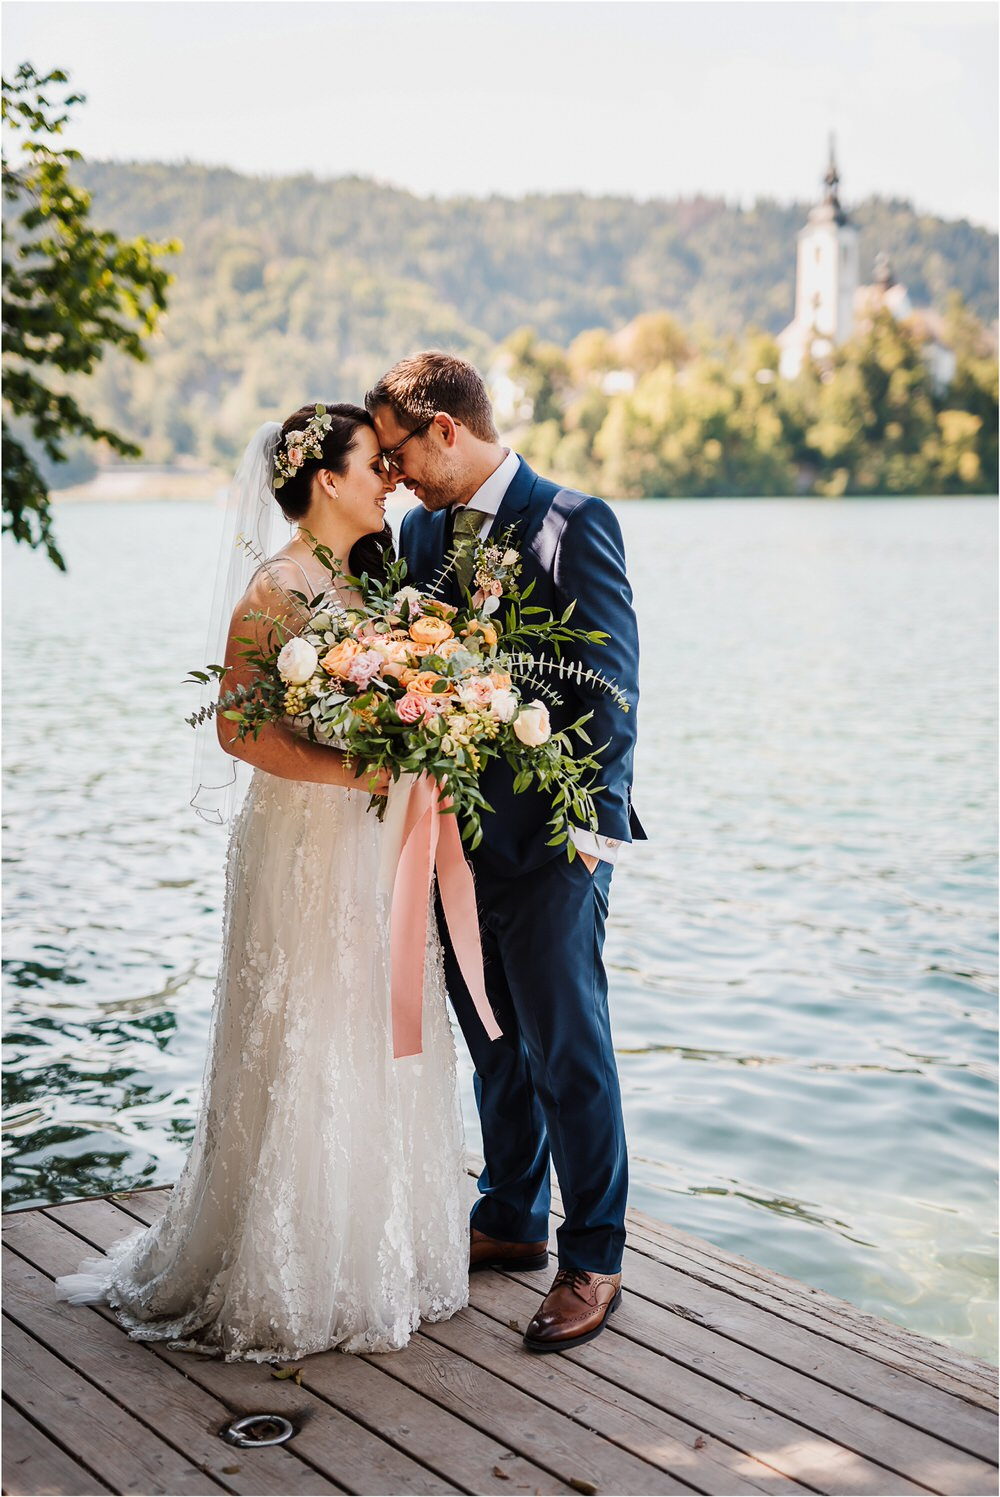 destination wedding italy greece ireland france uk photographer poroka poročni fotograf poročno fotografiranje gredič tri lučke bled tuscany 0094.jpg